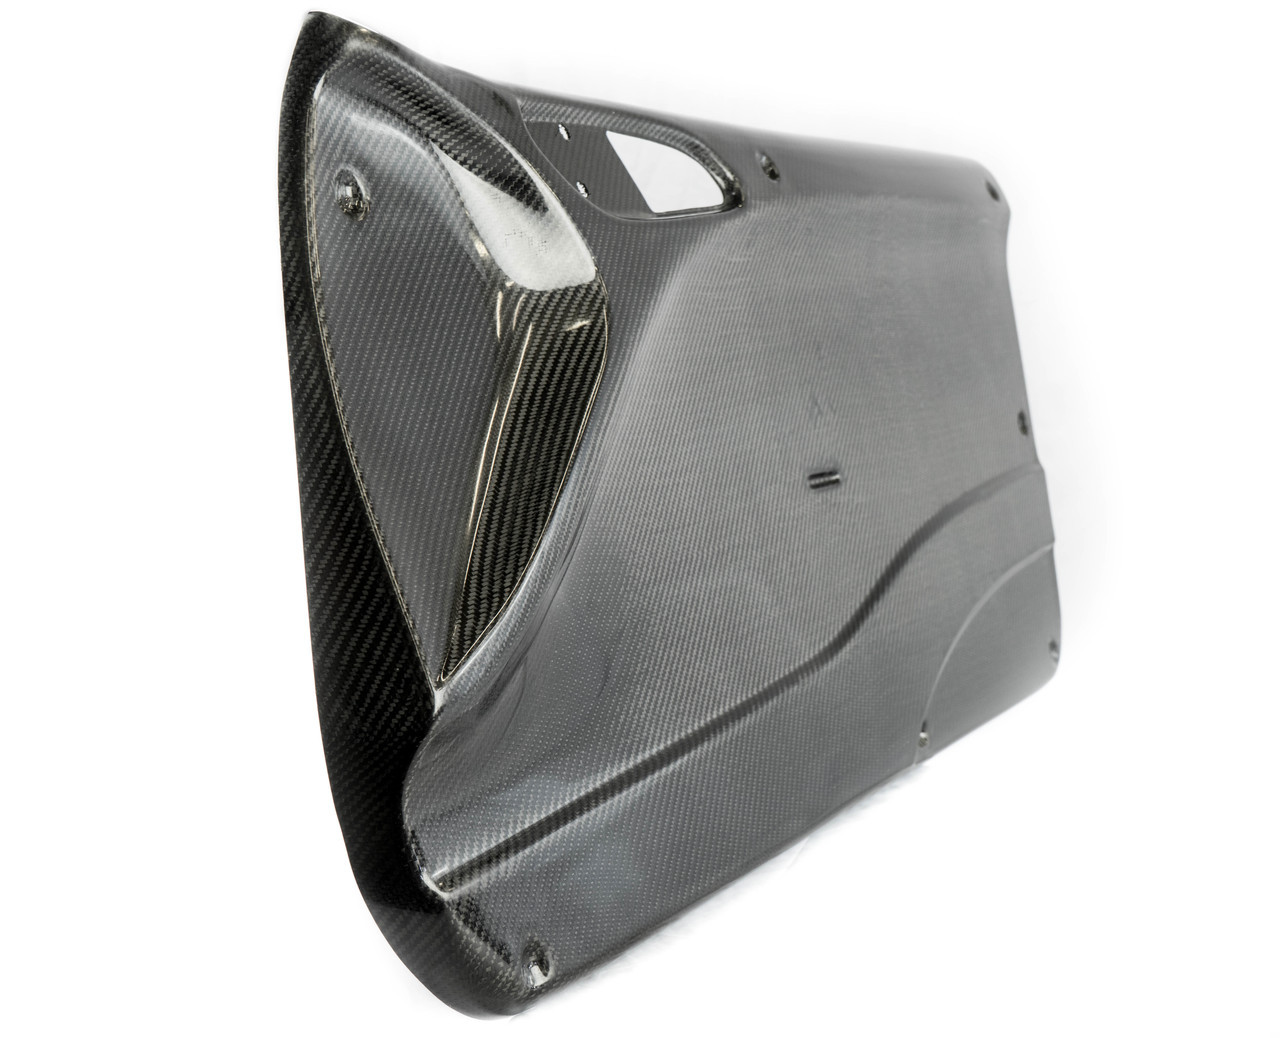 HARD Motorsport E46 Carbon Fiber Door Panel